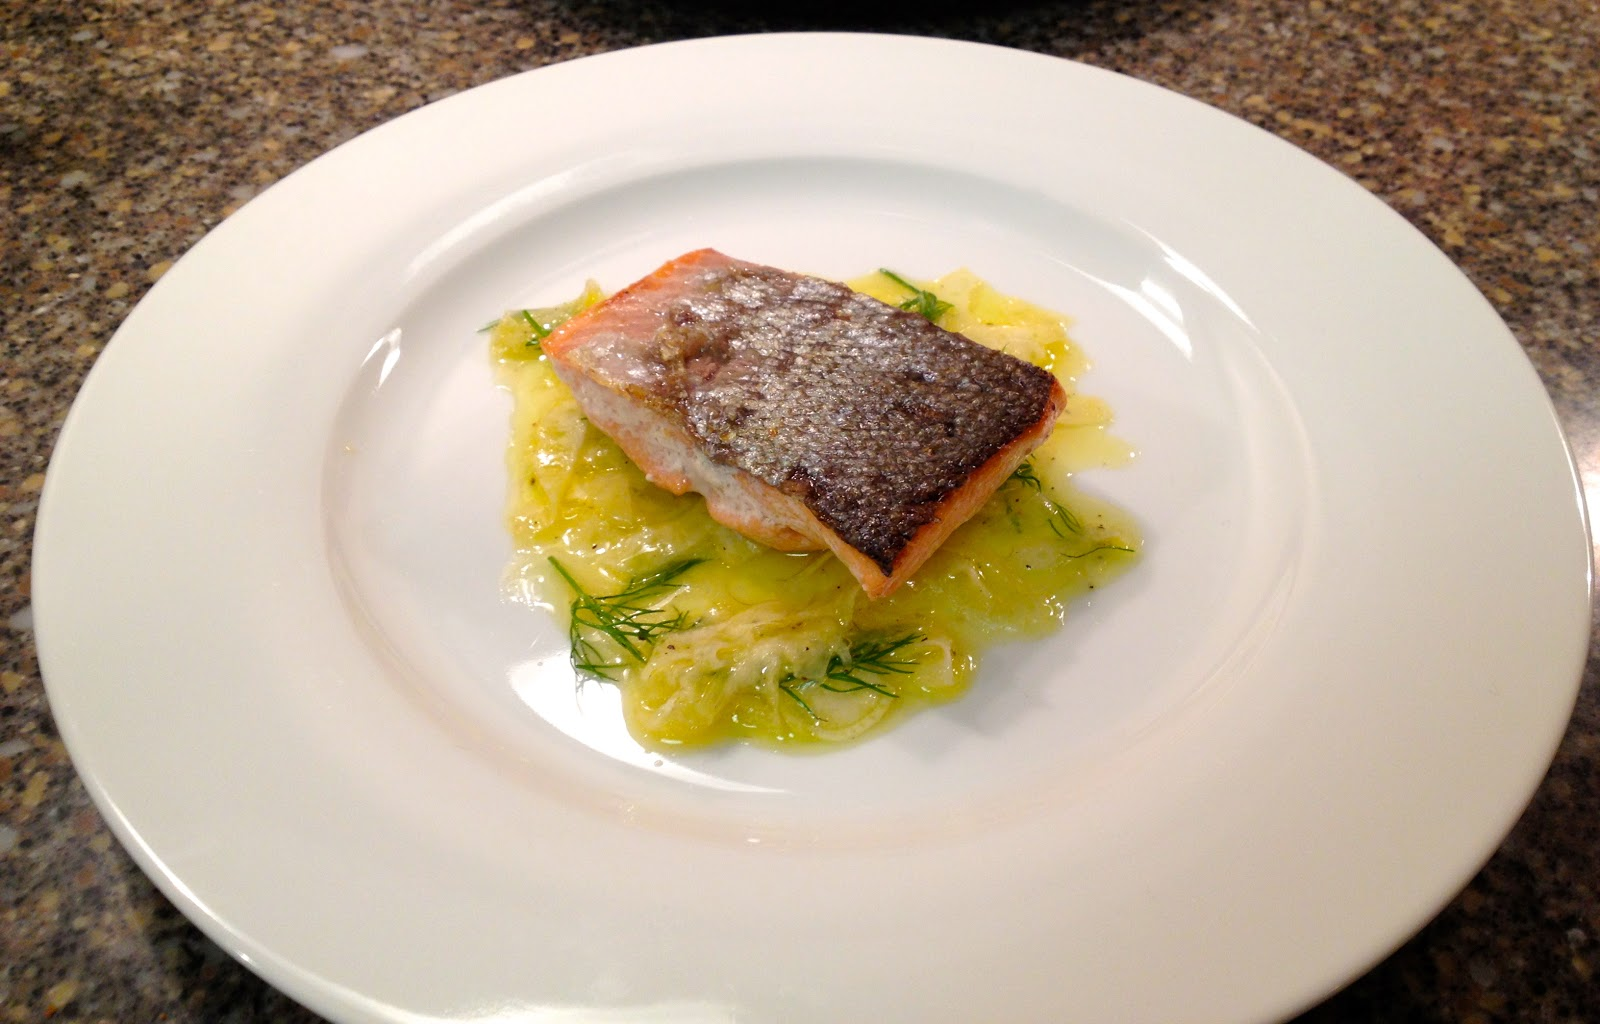 The Baked Alaska Project: Pan-Roasted Salmon with Fennel Salad